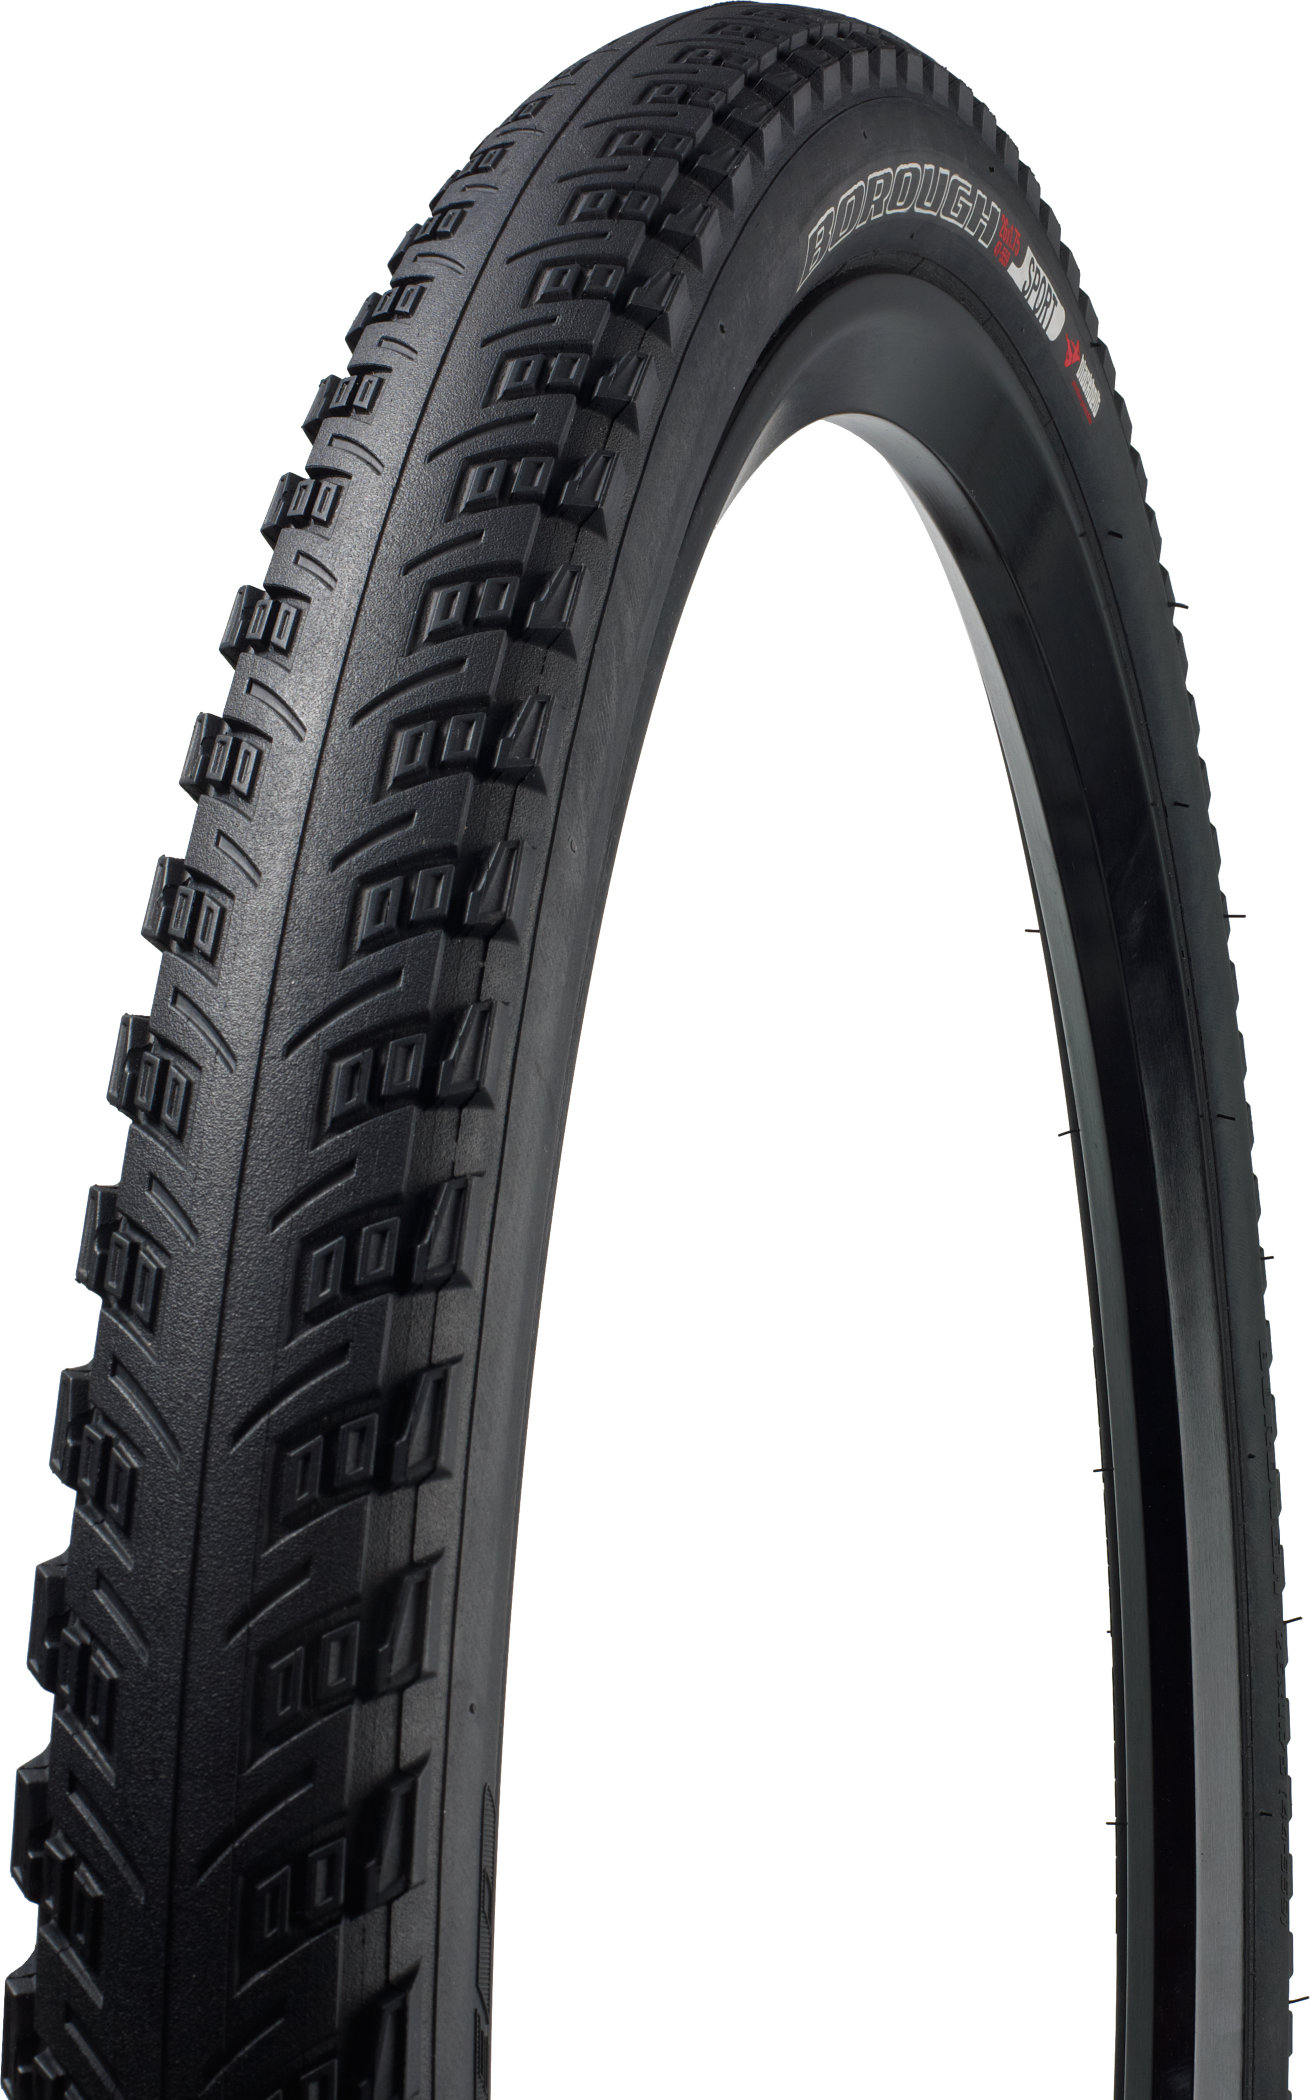 SPECIALIZED BOROUGH SPORT TIRE 26X1.75 - Alpha Bikes